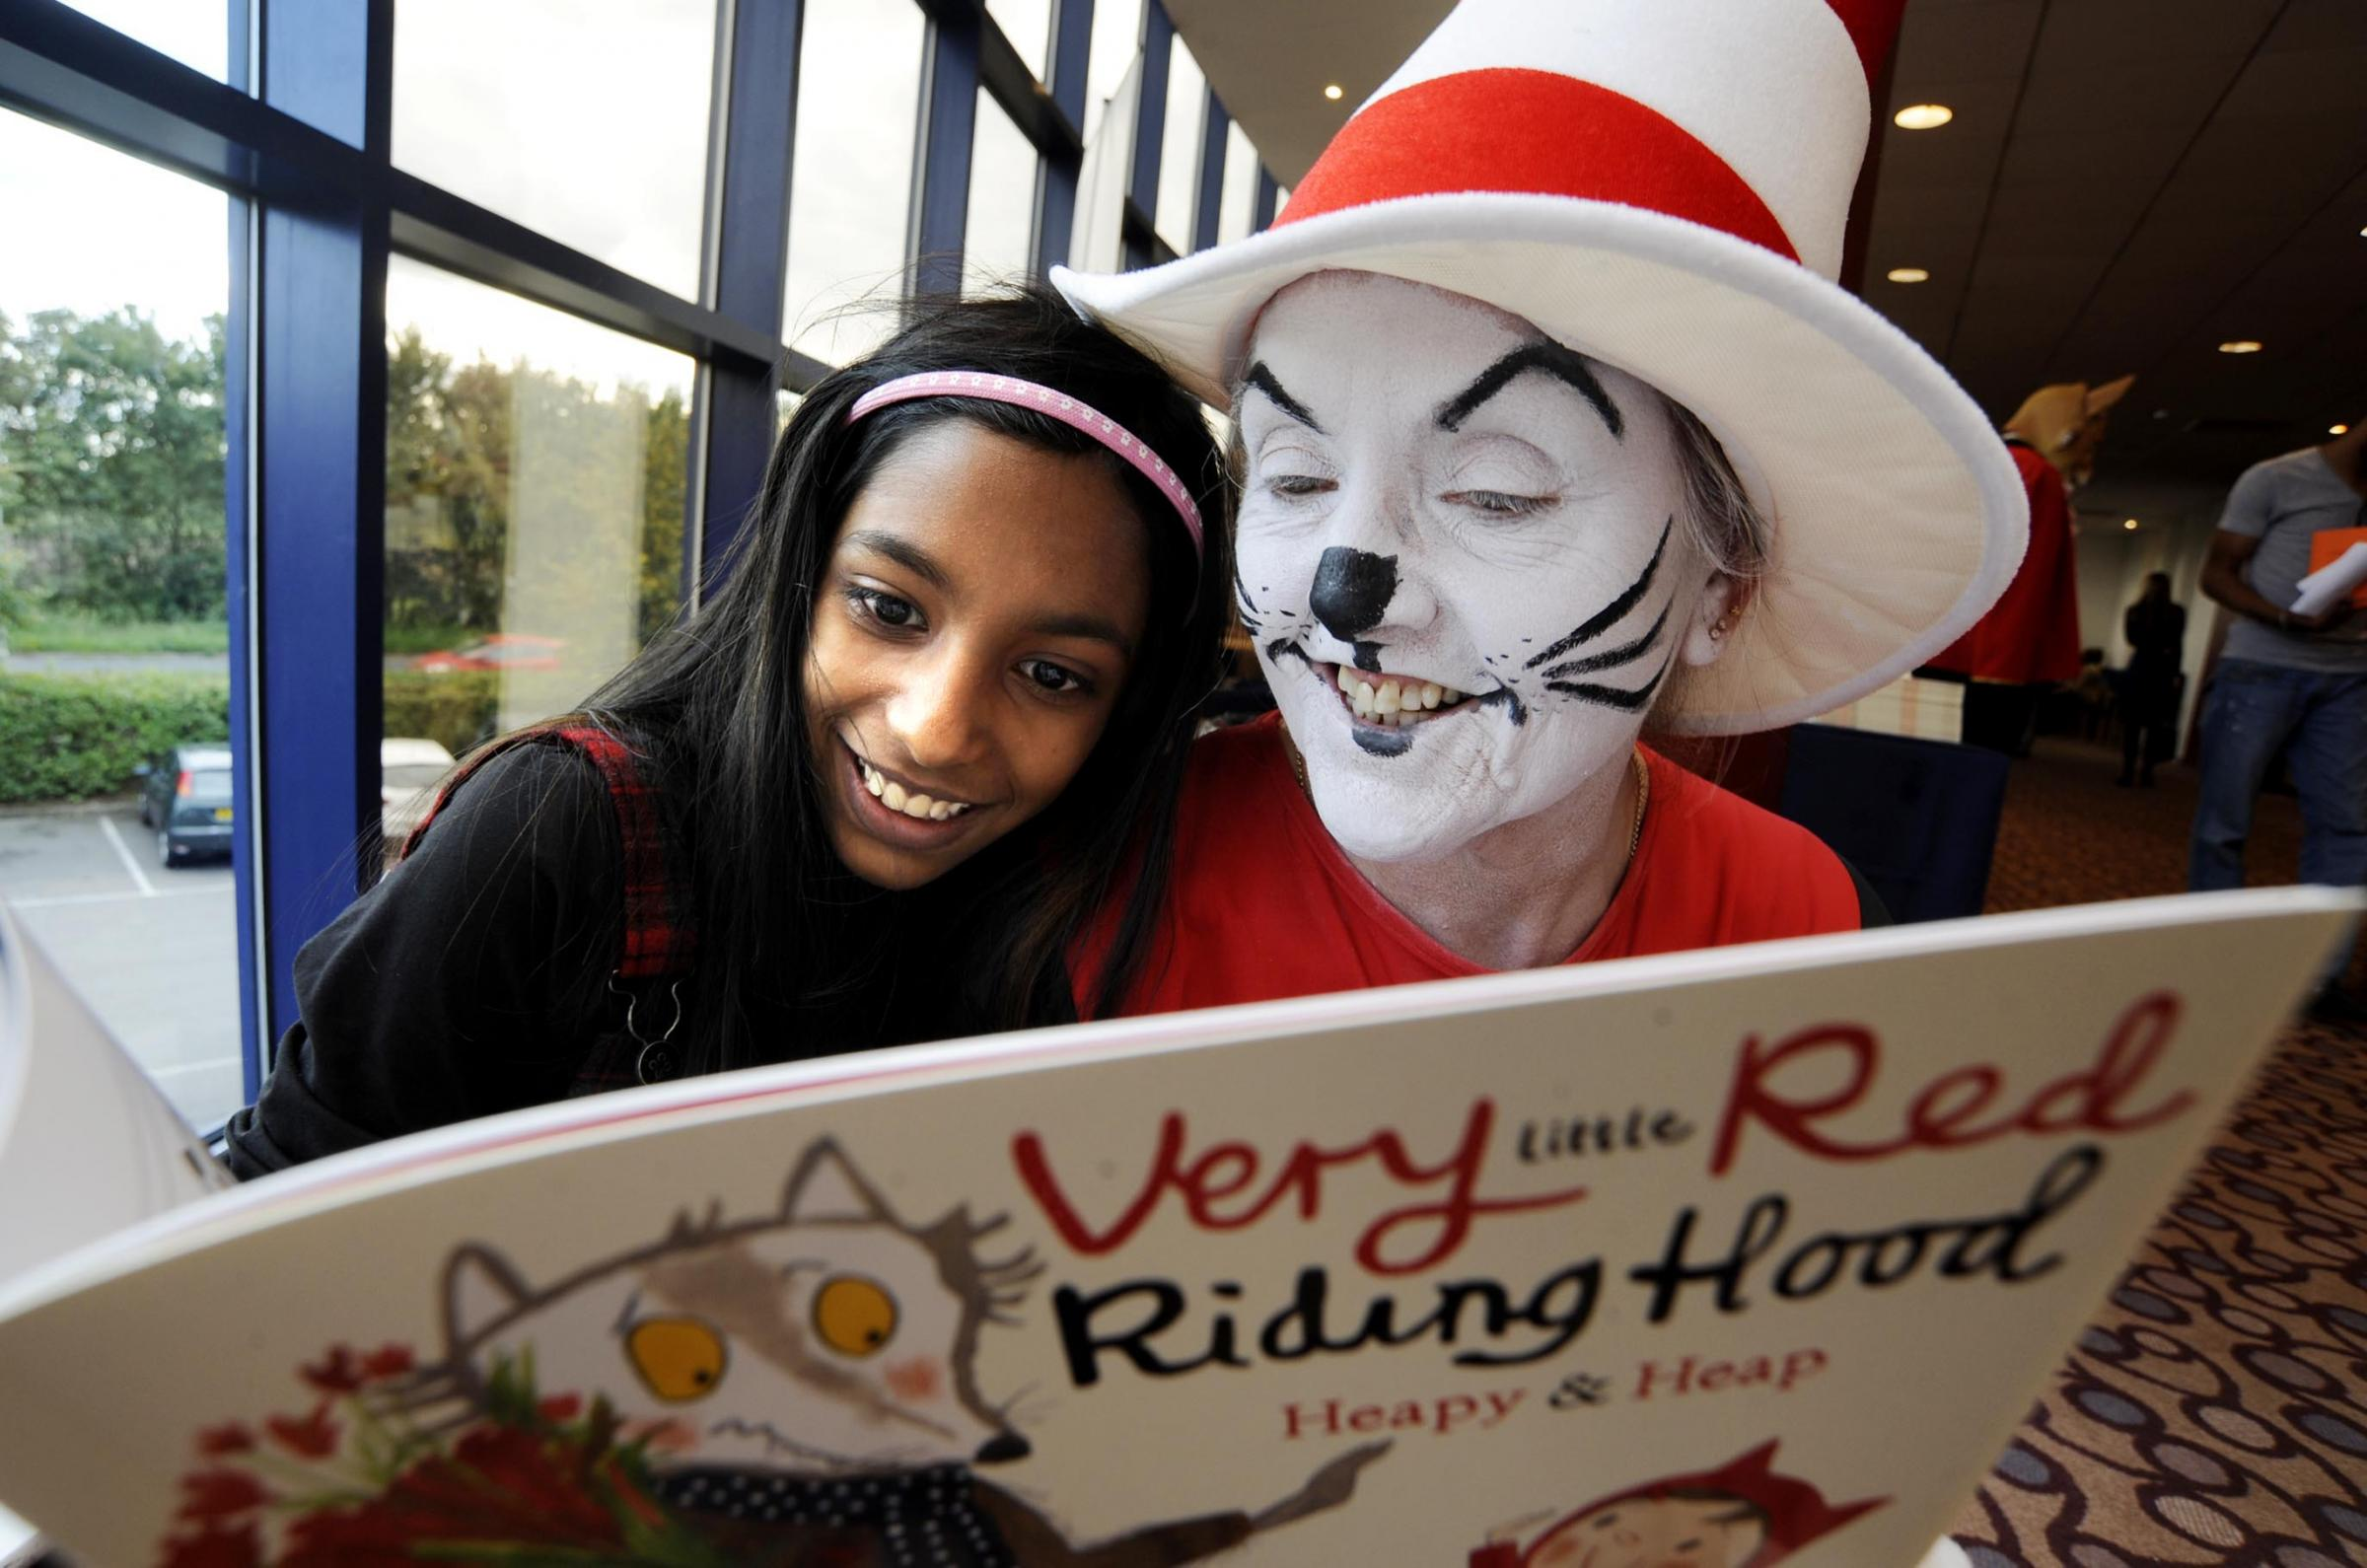 Joy of books: Karen Fernandes-Pauscar, 10, reads with Anne Walton, dressed as The Cat in the Hat, at yesterday's event